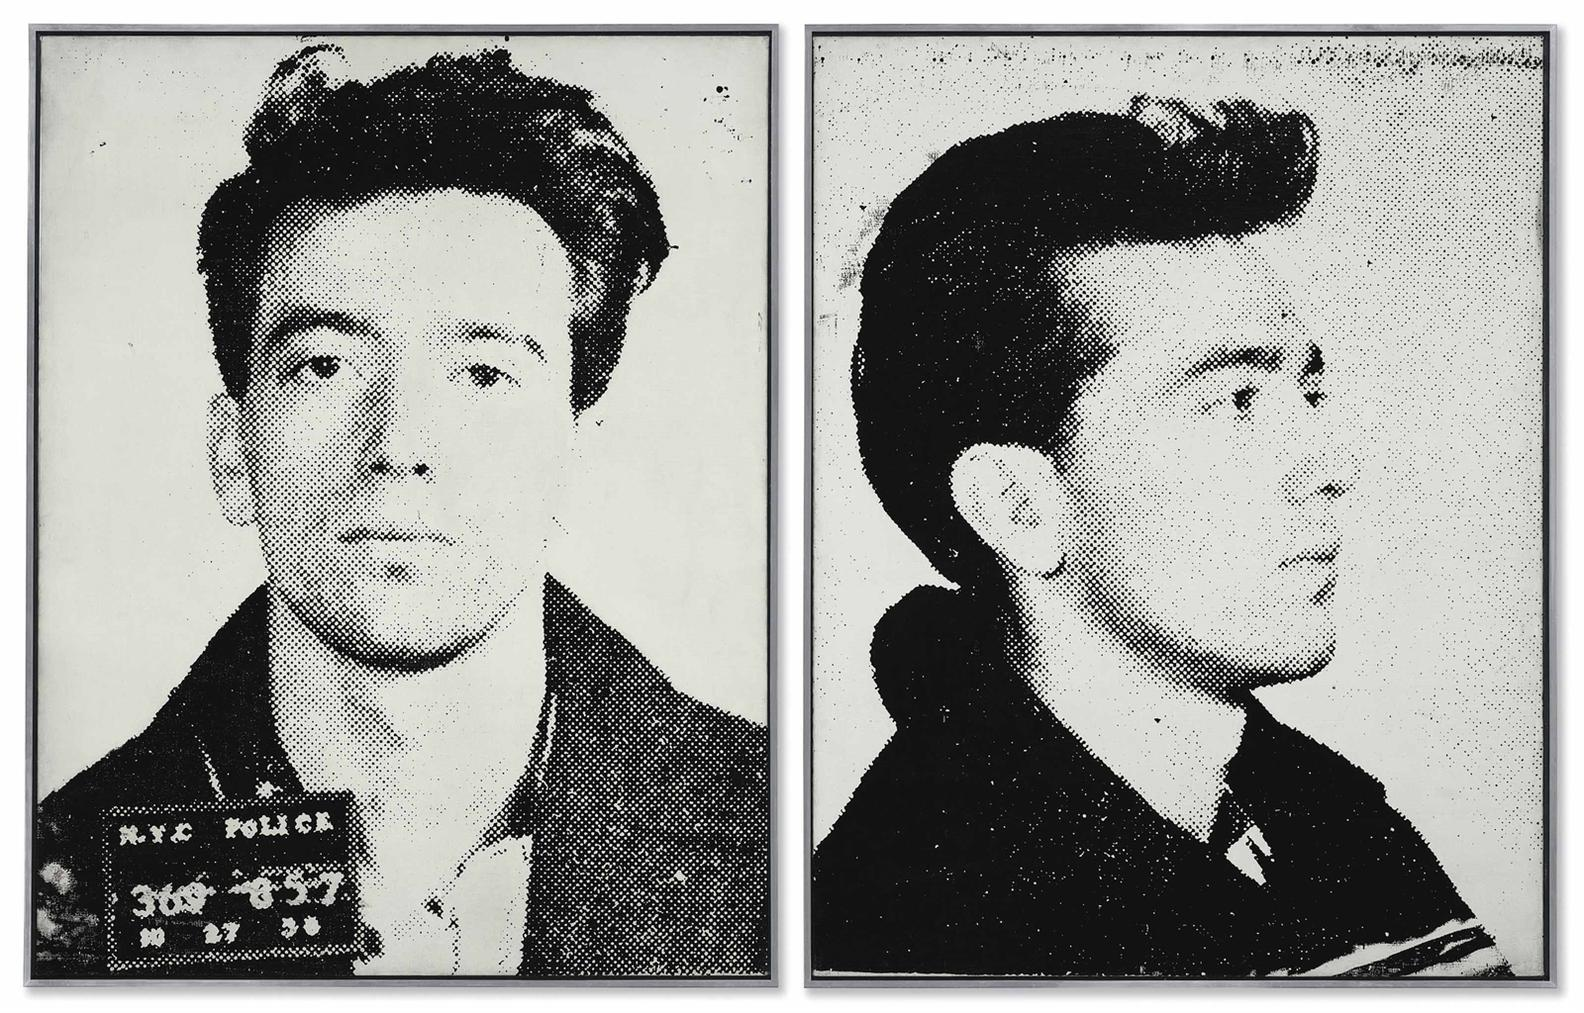 Andy Warhol-Most Wanted Men No. 11, John Joseph H., Jr.-1964